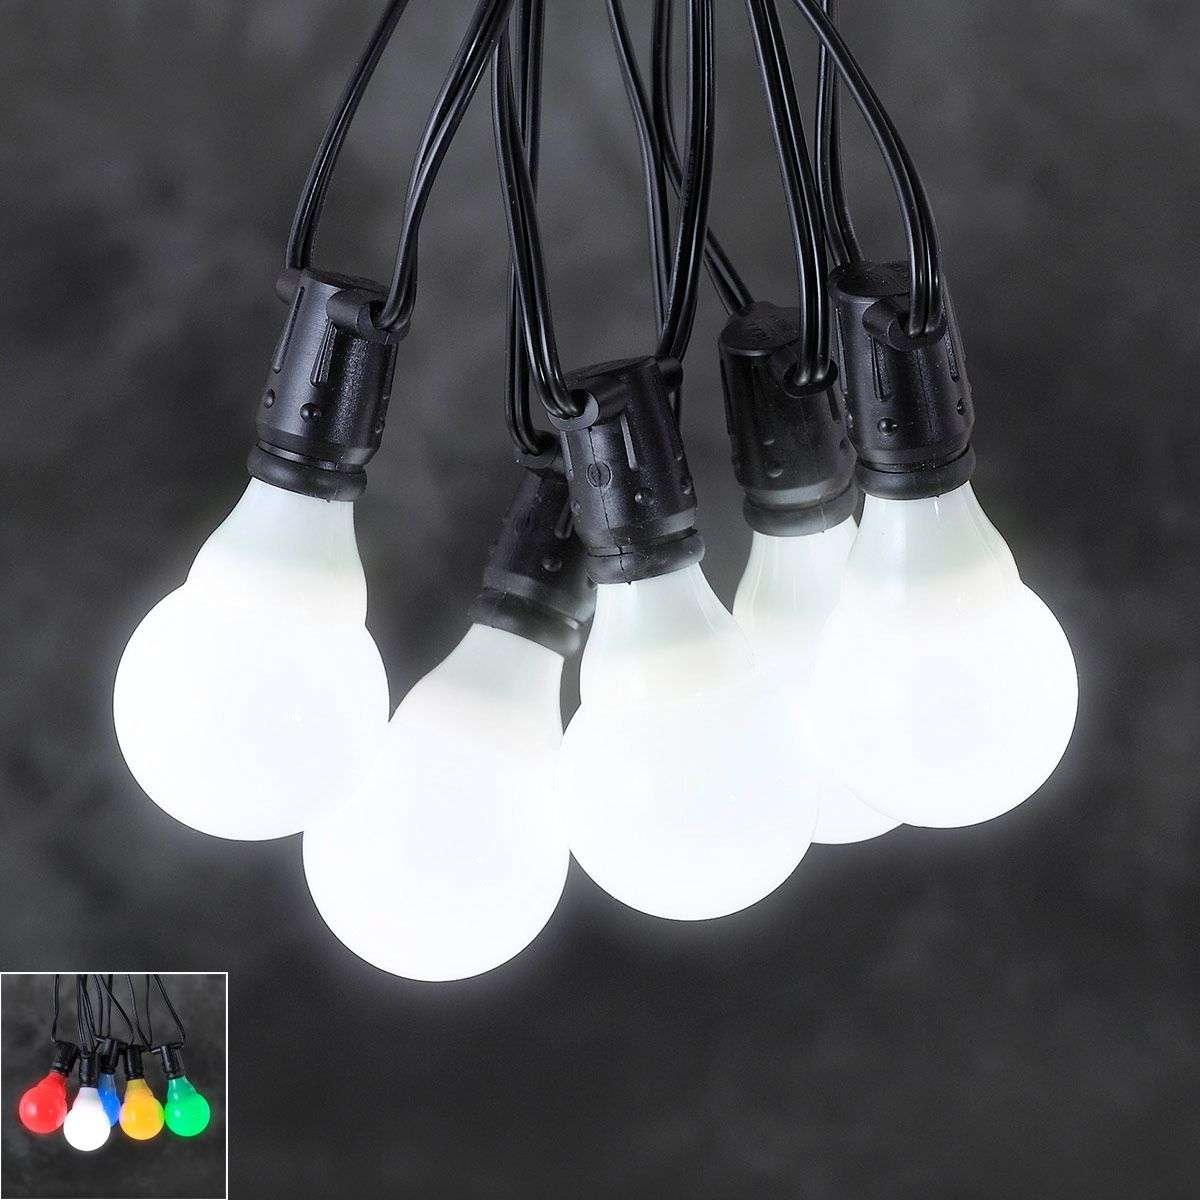 24V-systeem lichtketting voor tuincafé LED E10-5524406X-31